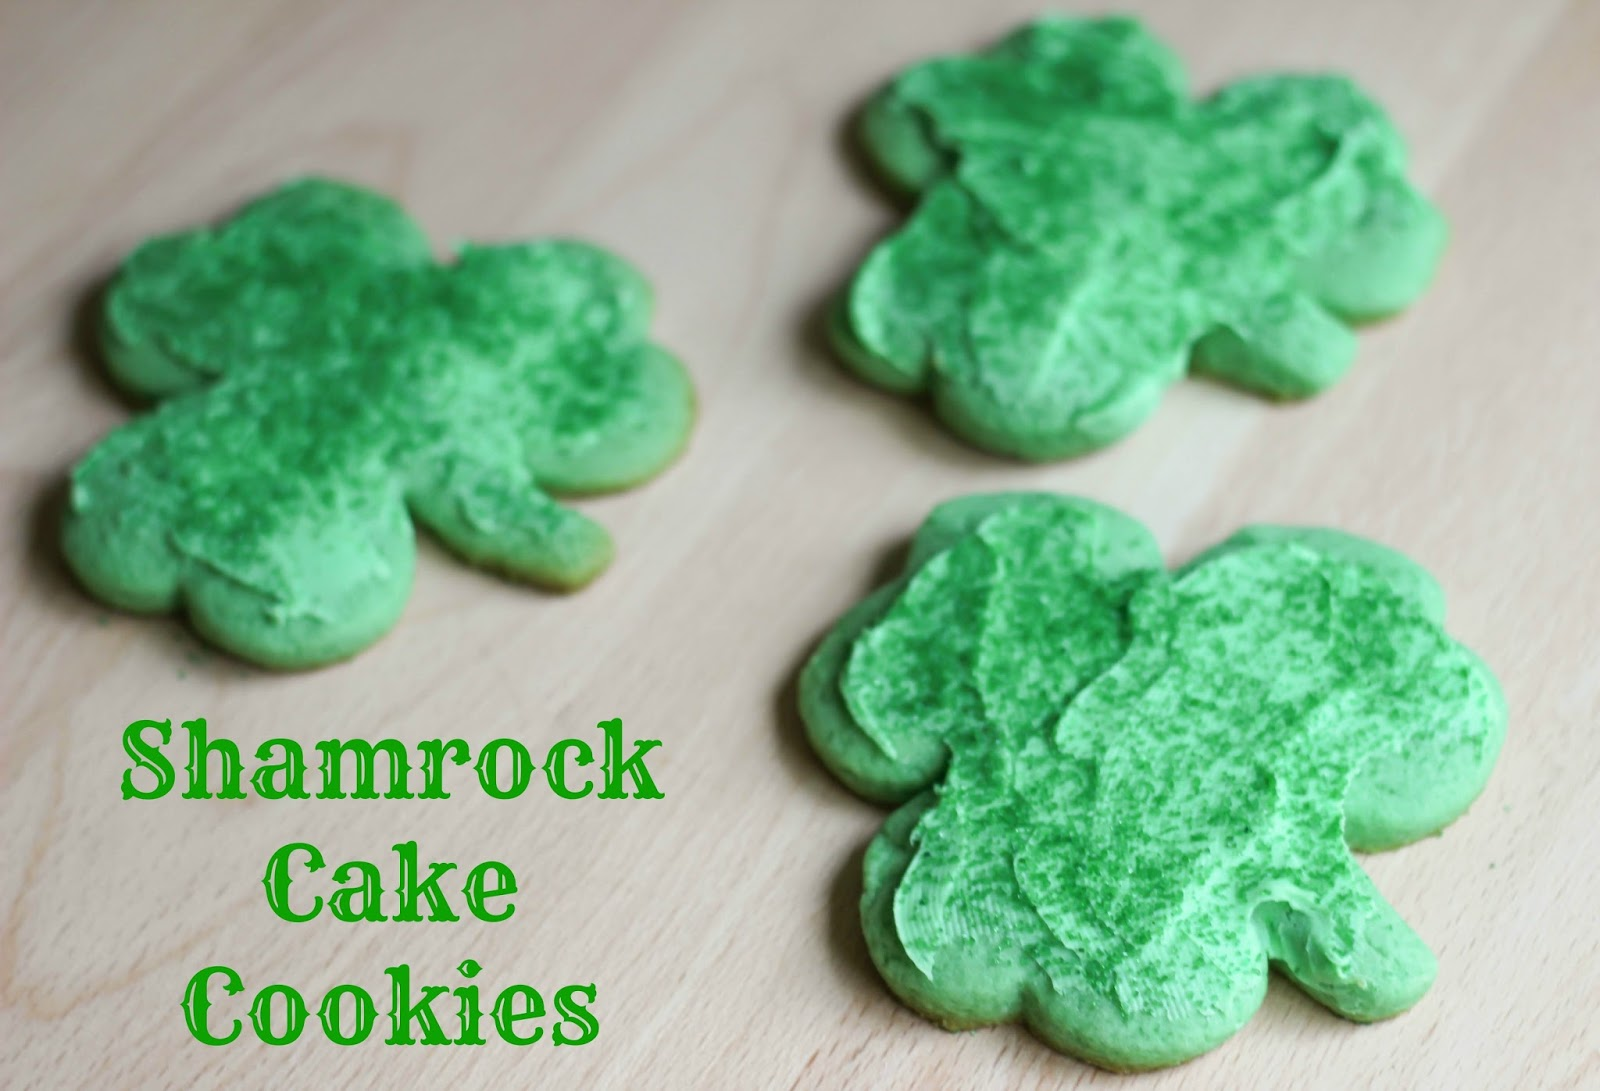 Irish Desserts: Delicious Irish Cookies